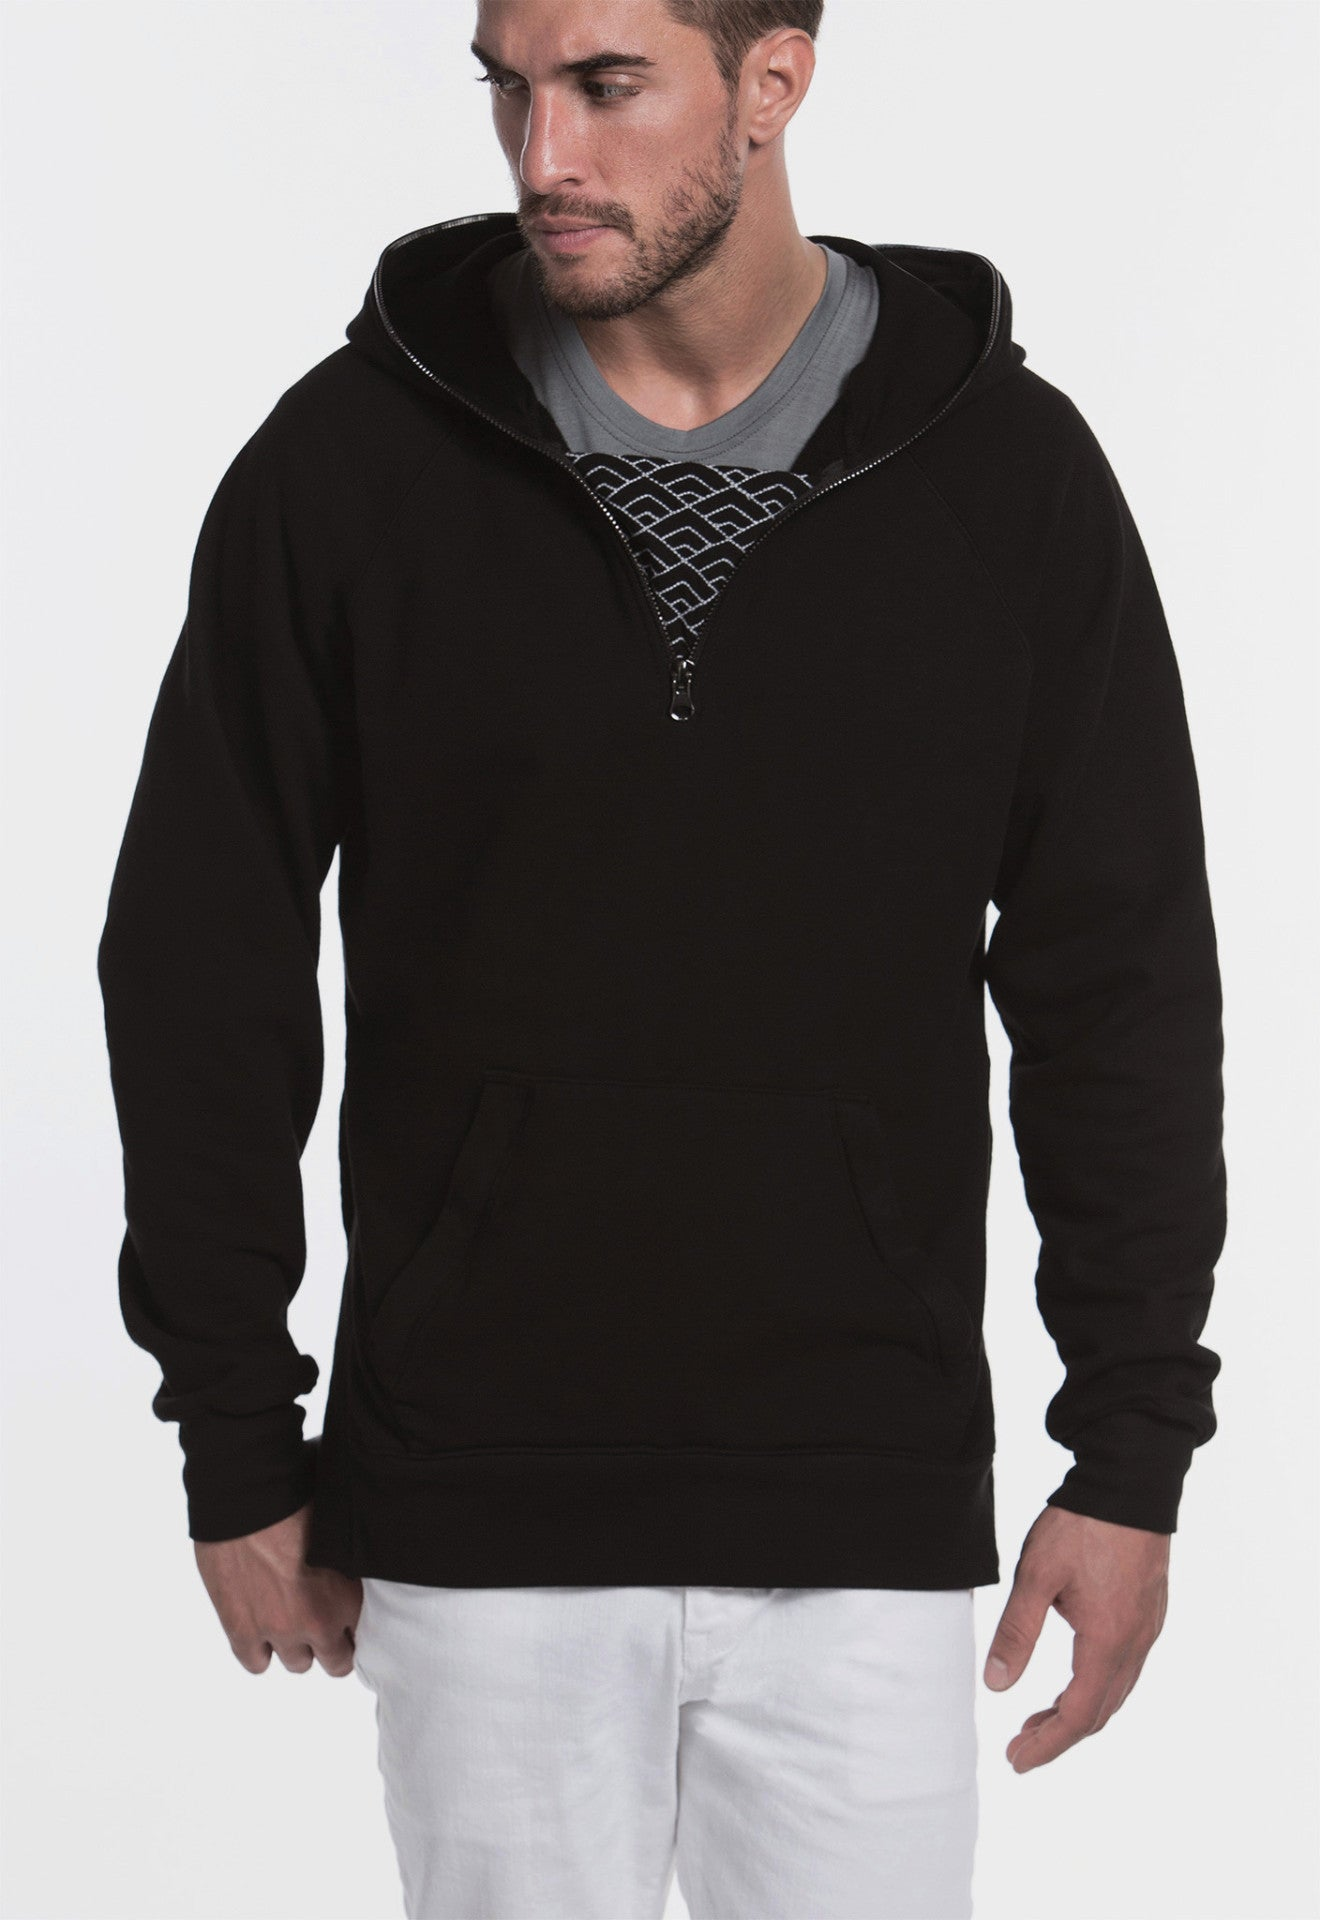 Diamond Waves Half-Zip Hoodie (Onyx) - SELECTIV